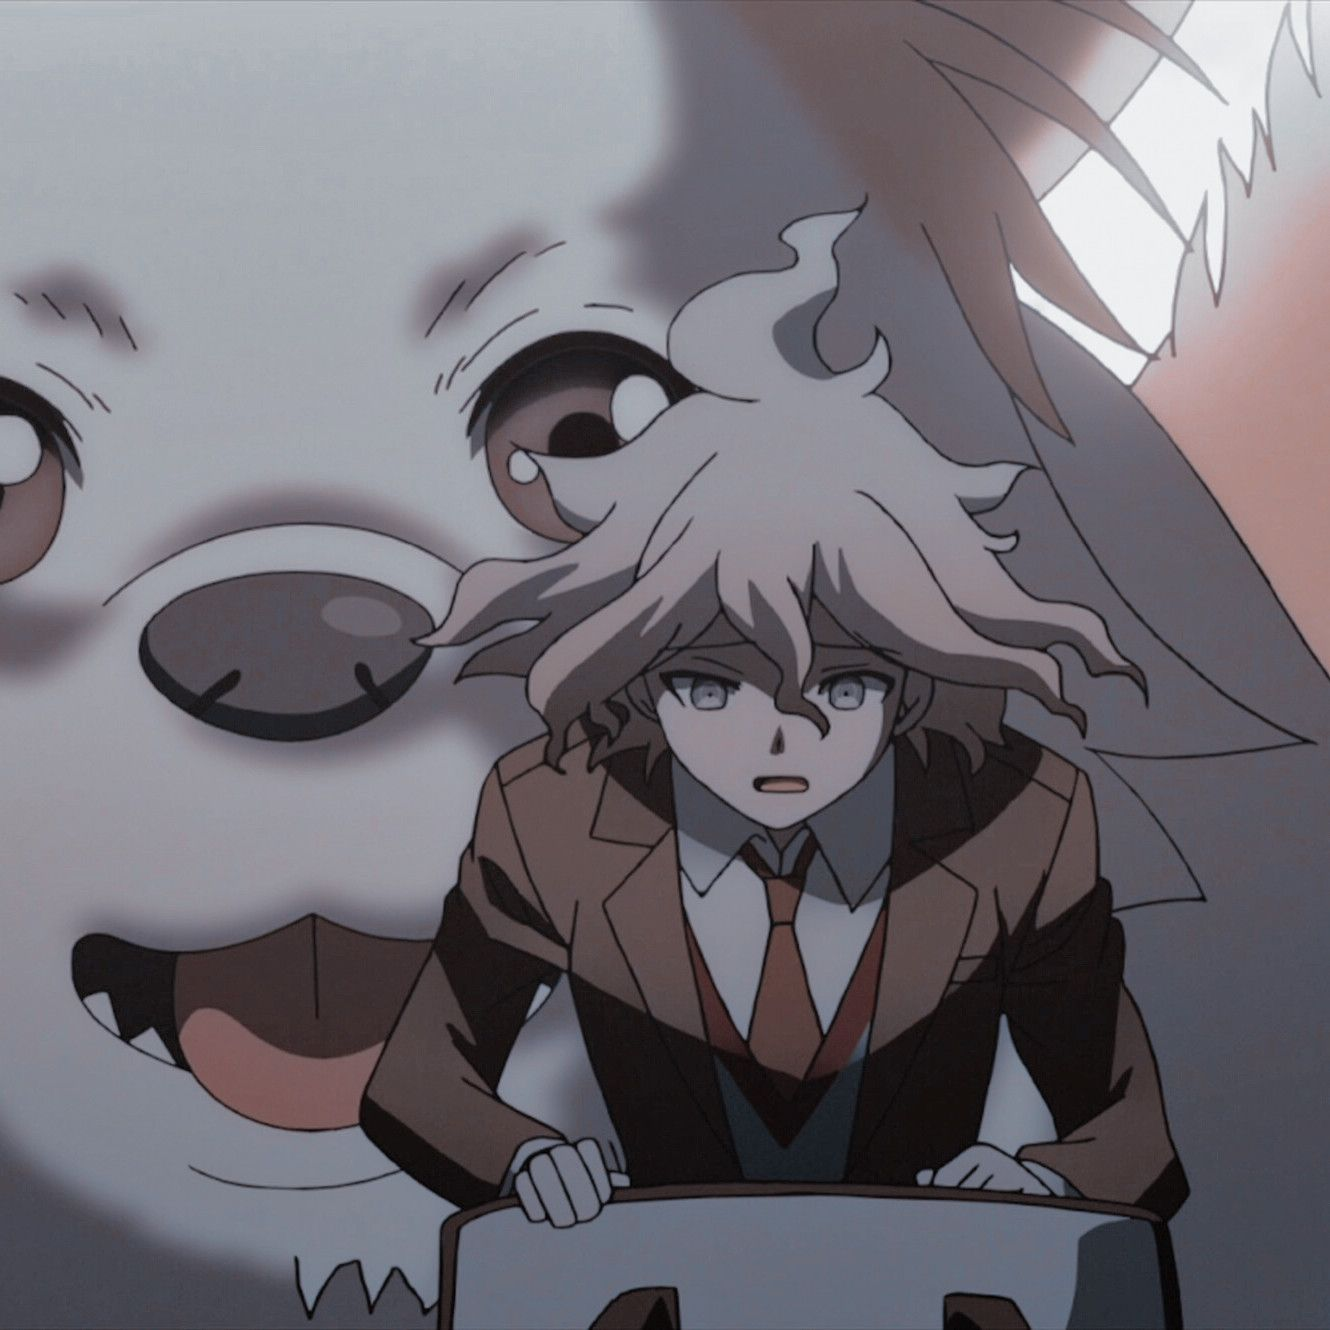 𝘼𝙣𝙞𝙢𝙚 𝙄𝙘𝙤𝙣𝙨 in 2020 Anime, Nagito komaeda, Anime icons